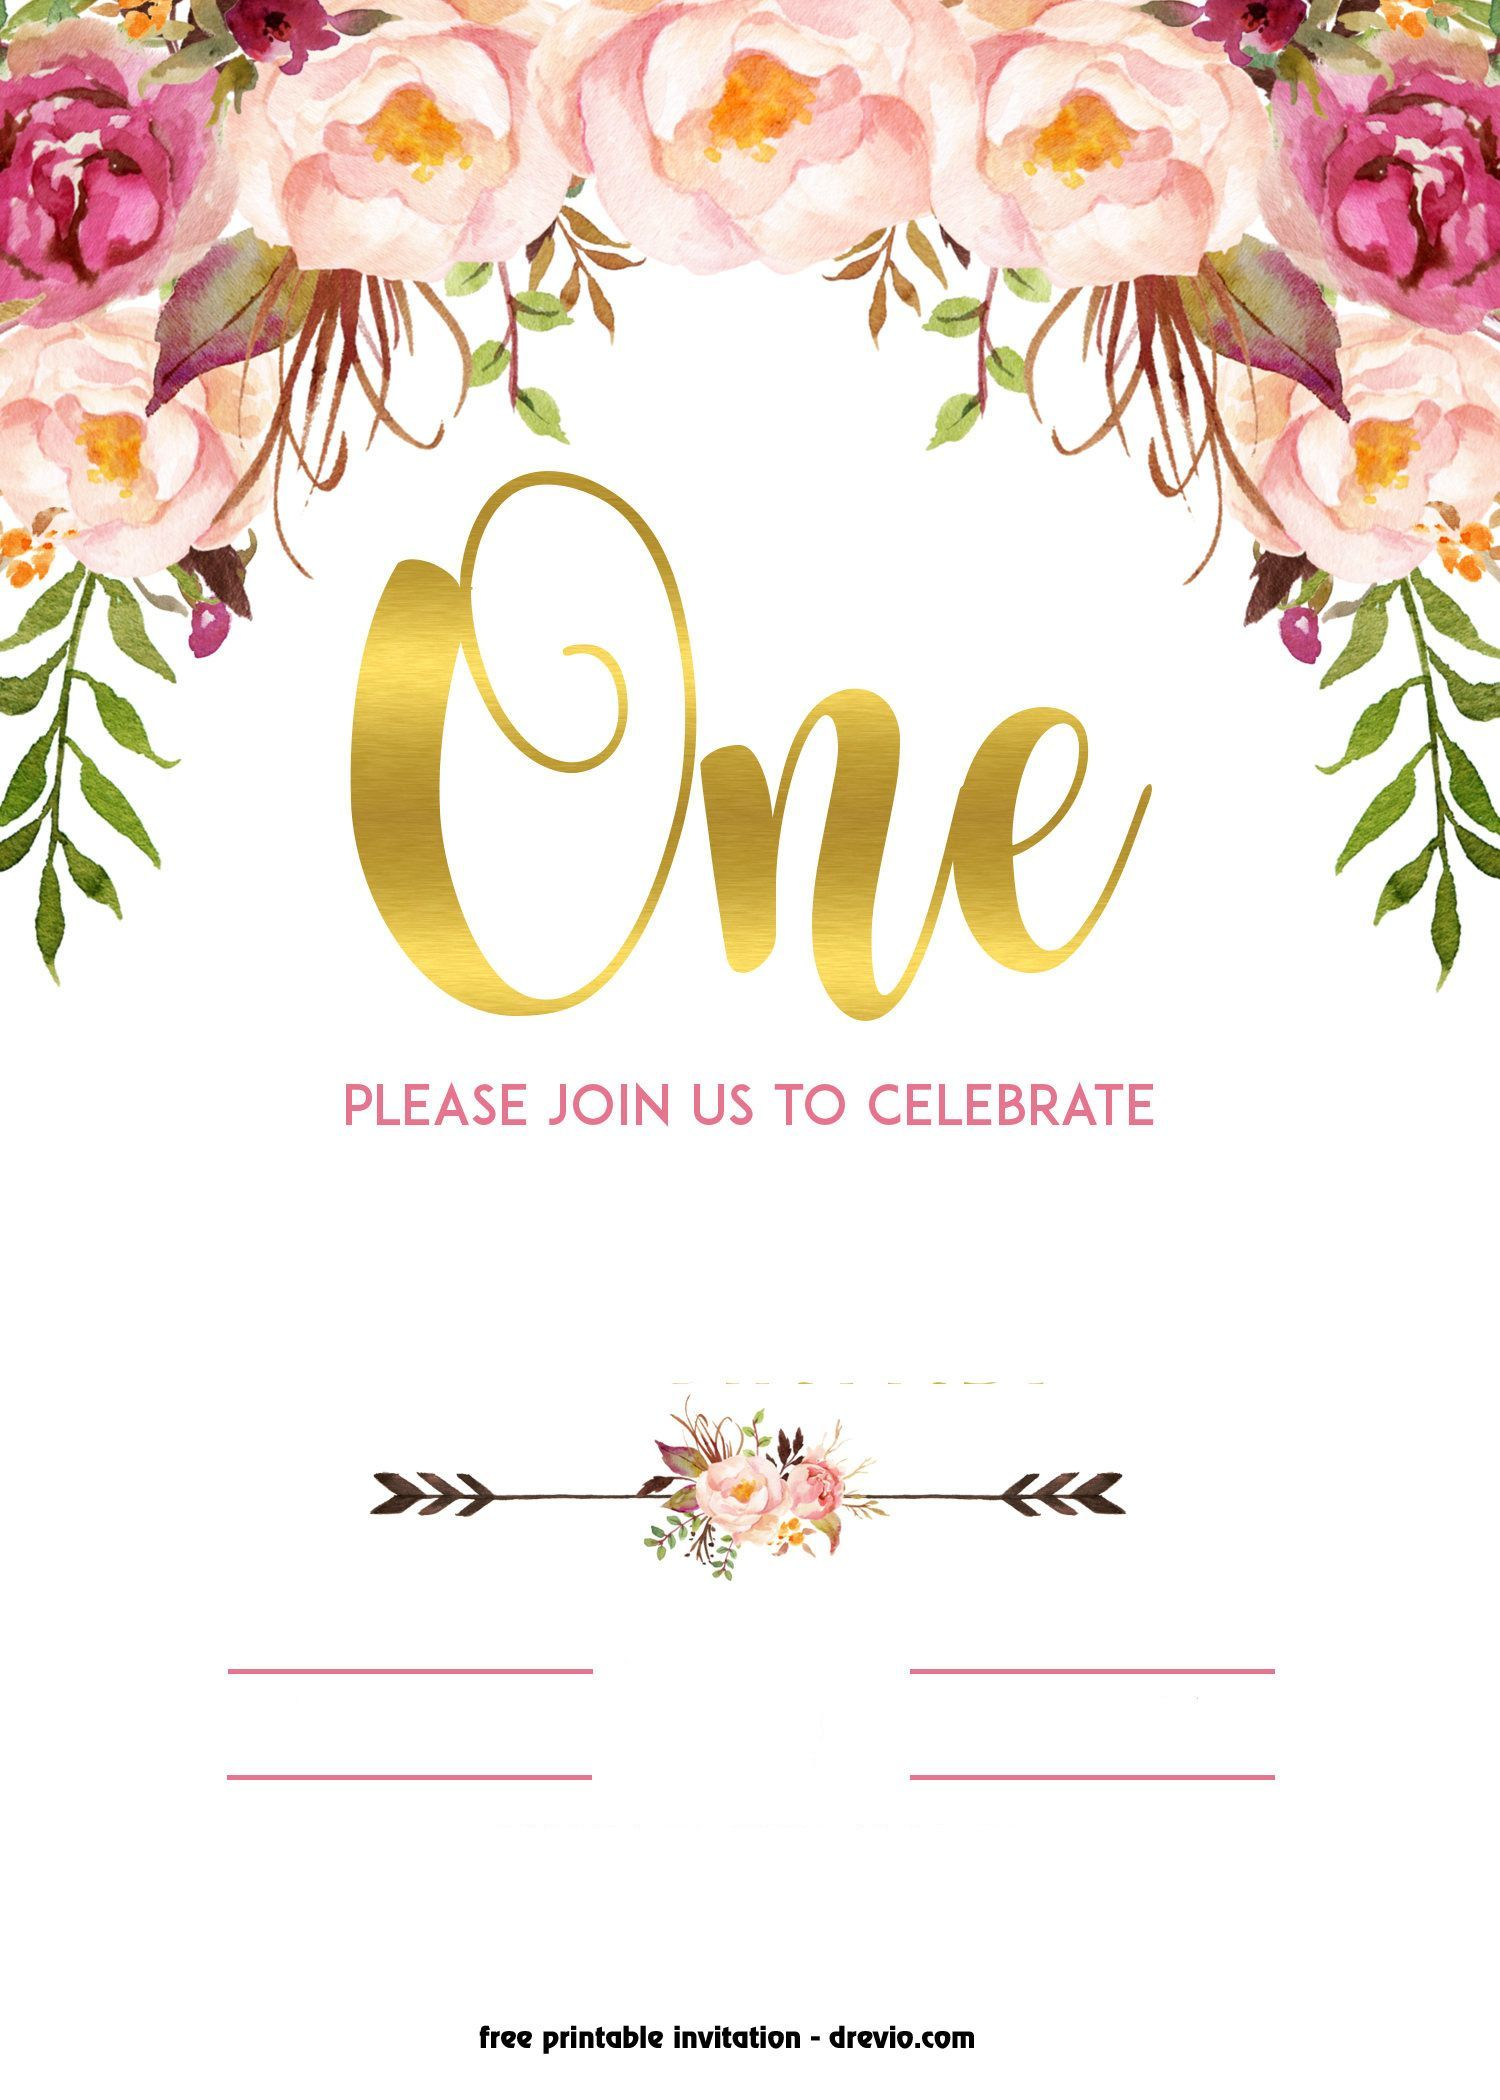 4 Inspiring Vintage Birthday Invitation Template Free Photos  in